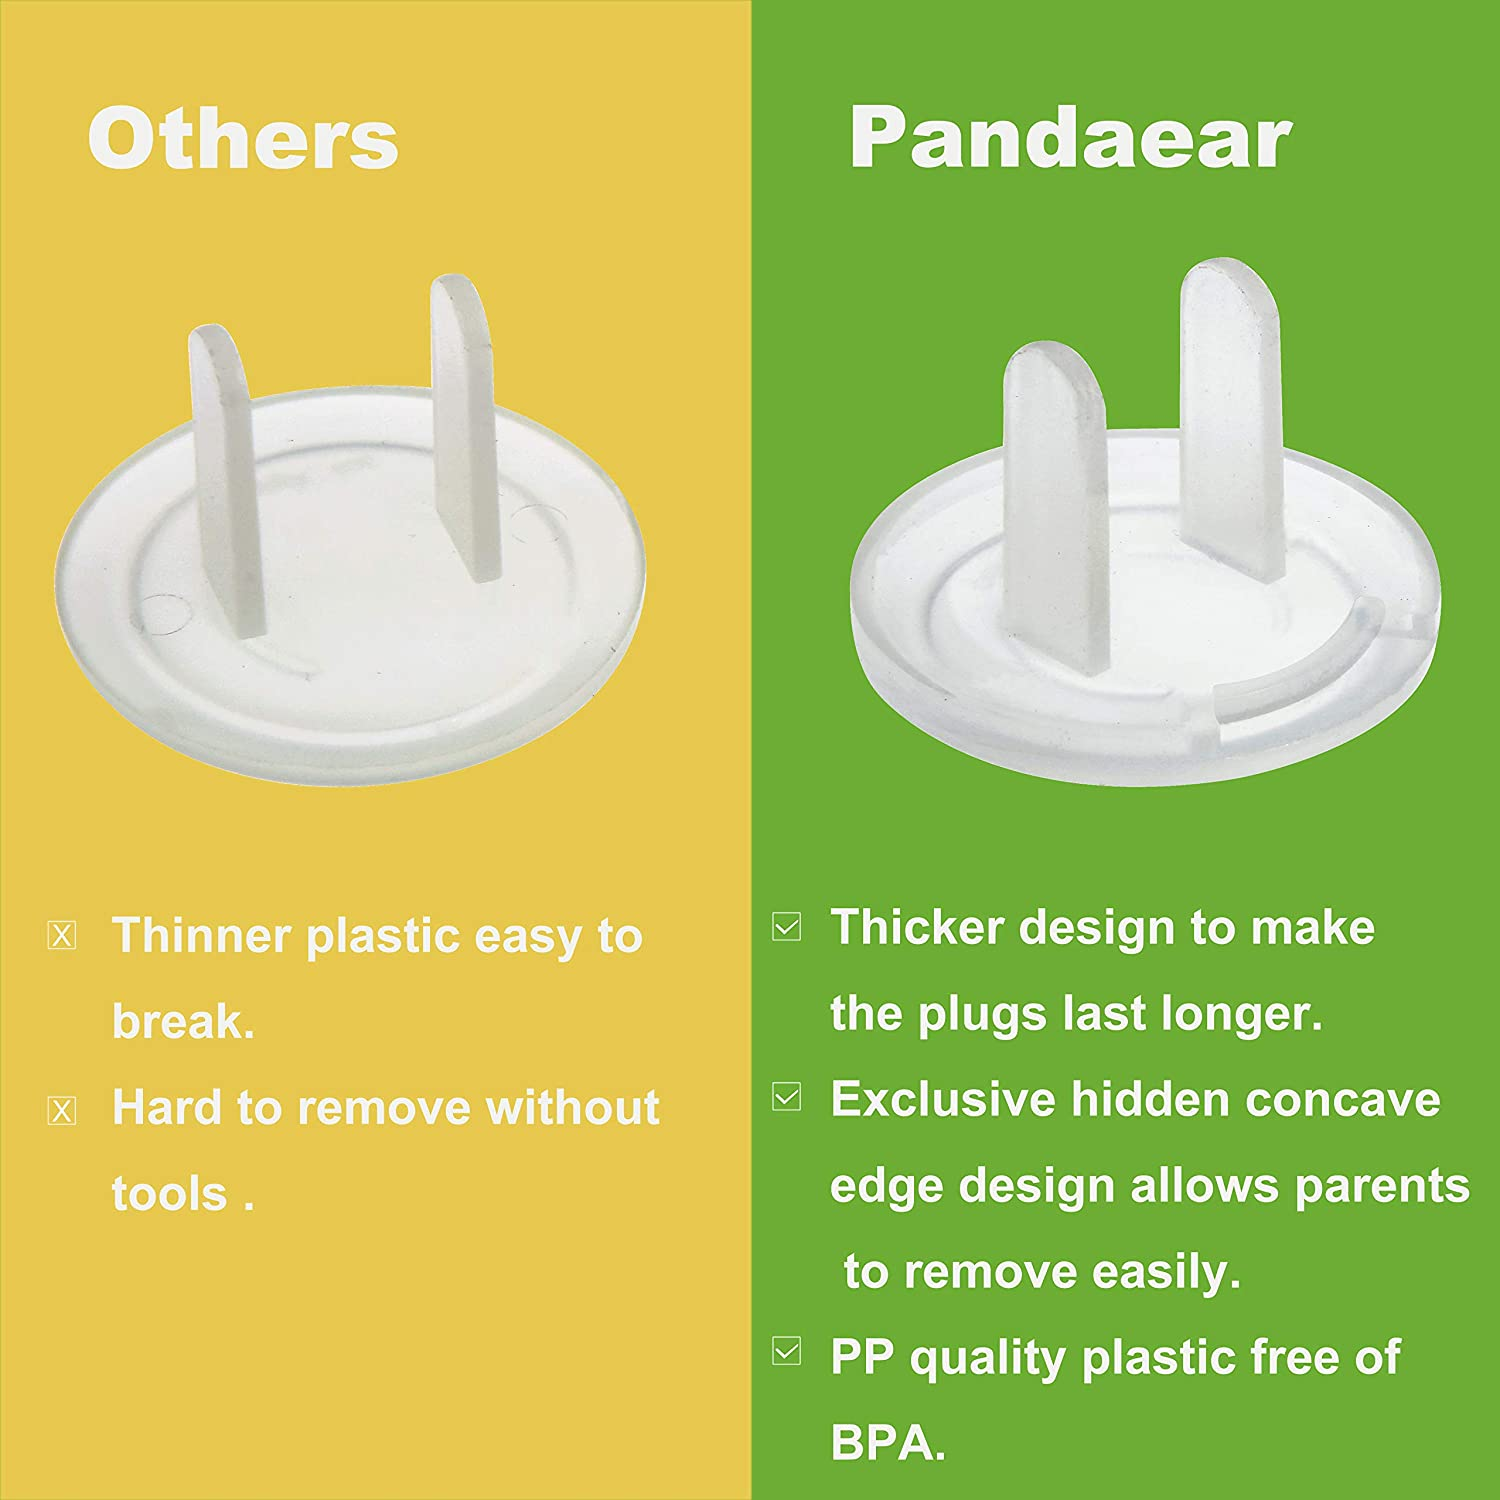 PandaEar Baby All in One Safety Proofing Kit Set|12 Clear Adhesive Soft Gel Corner Guard Protectors|32 Outlet Plug Covers| Easy Installation, for Furniture, Hard Edges, Tables, Electrical Hazards